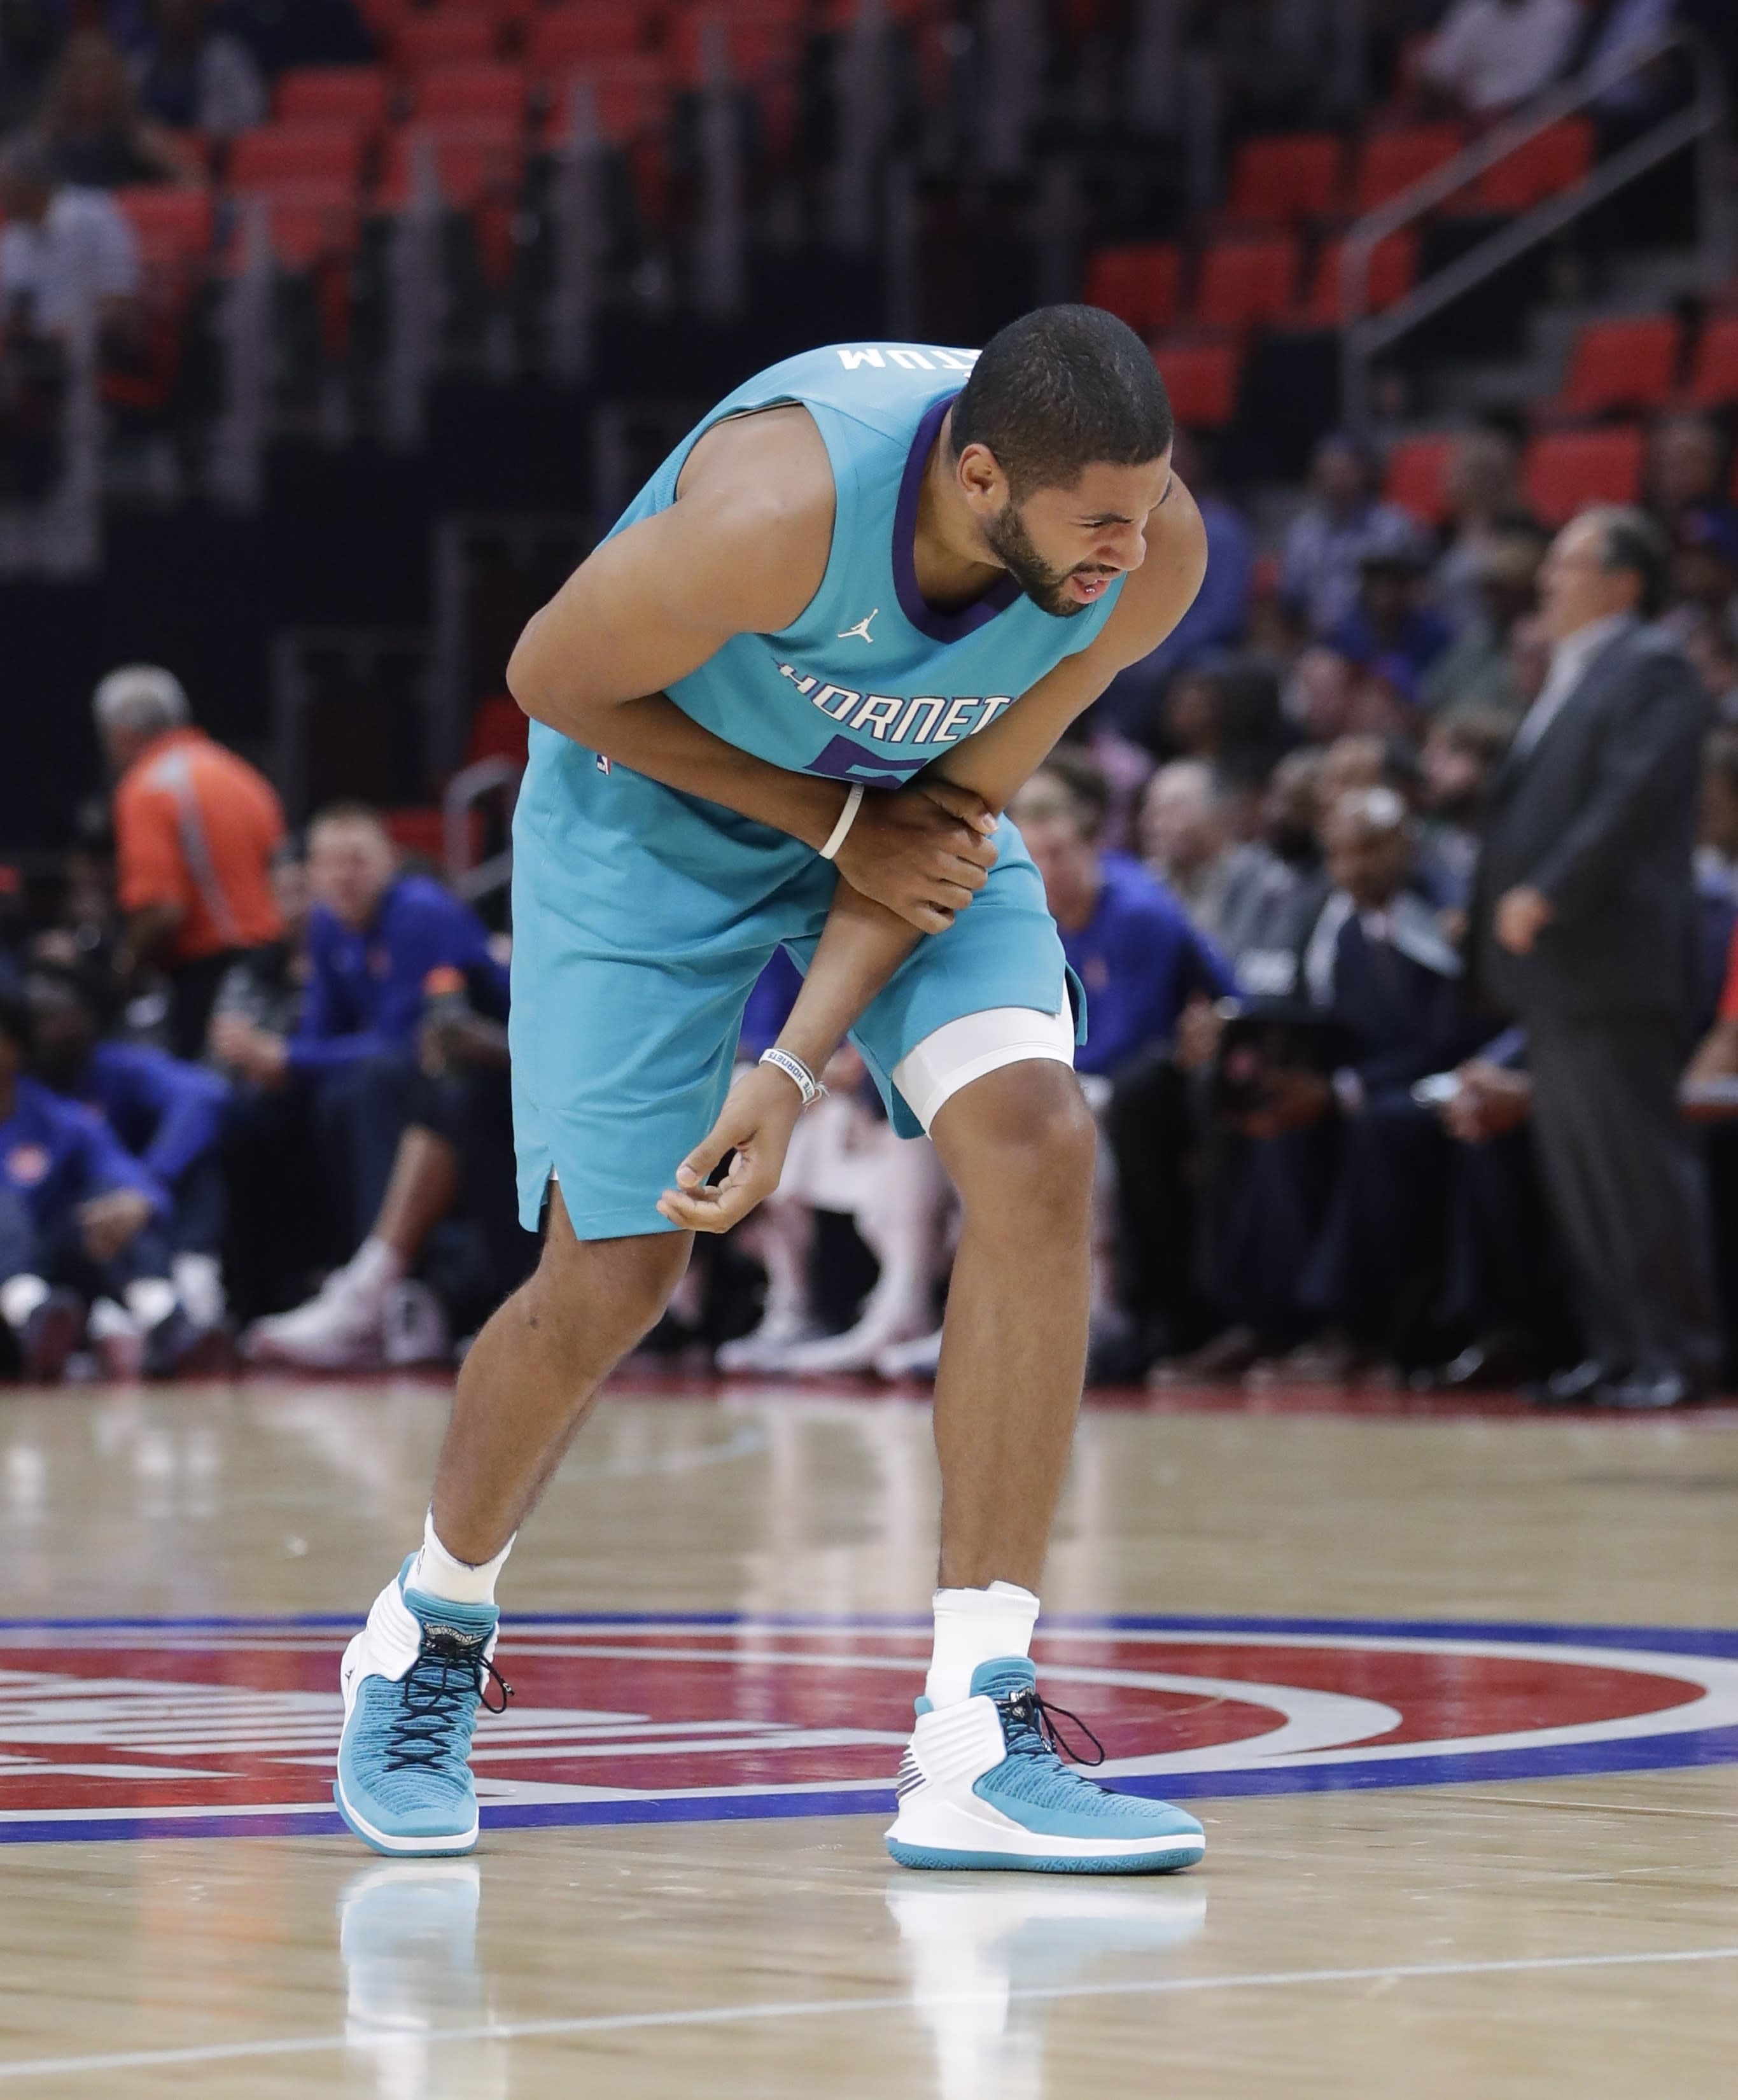 Charlotte's Nicolas Batum to miss 8-to-12 weeks because of elbow injury